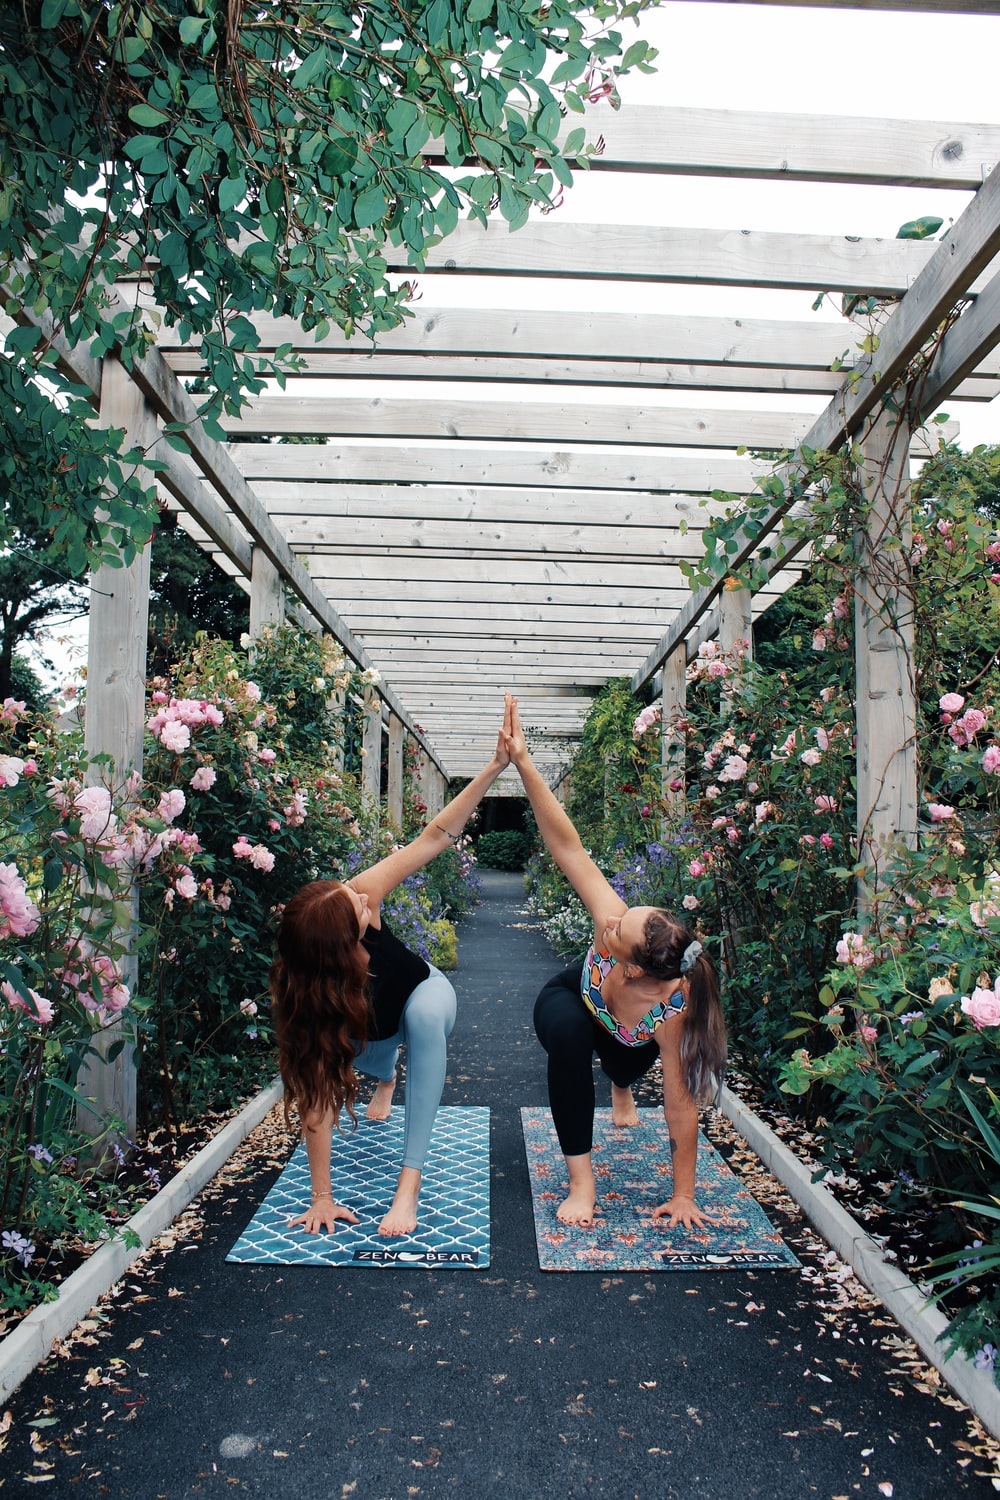 2 women in blue tank top and black leggings standing near pink flowers during daytime